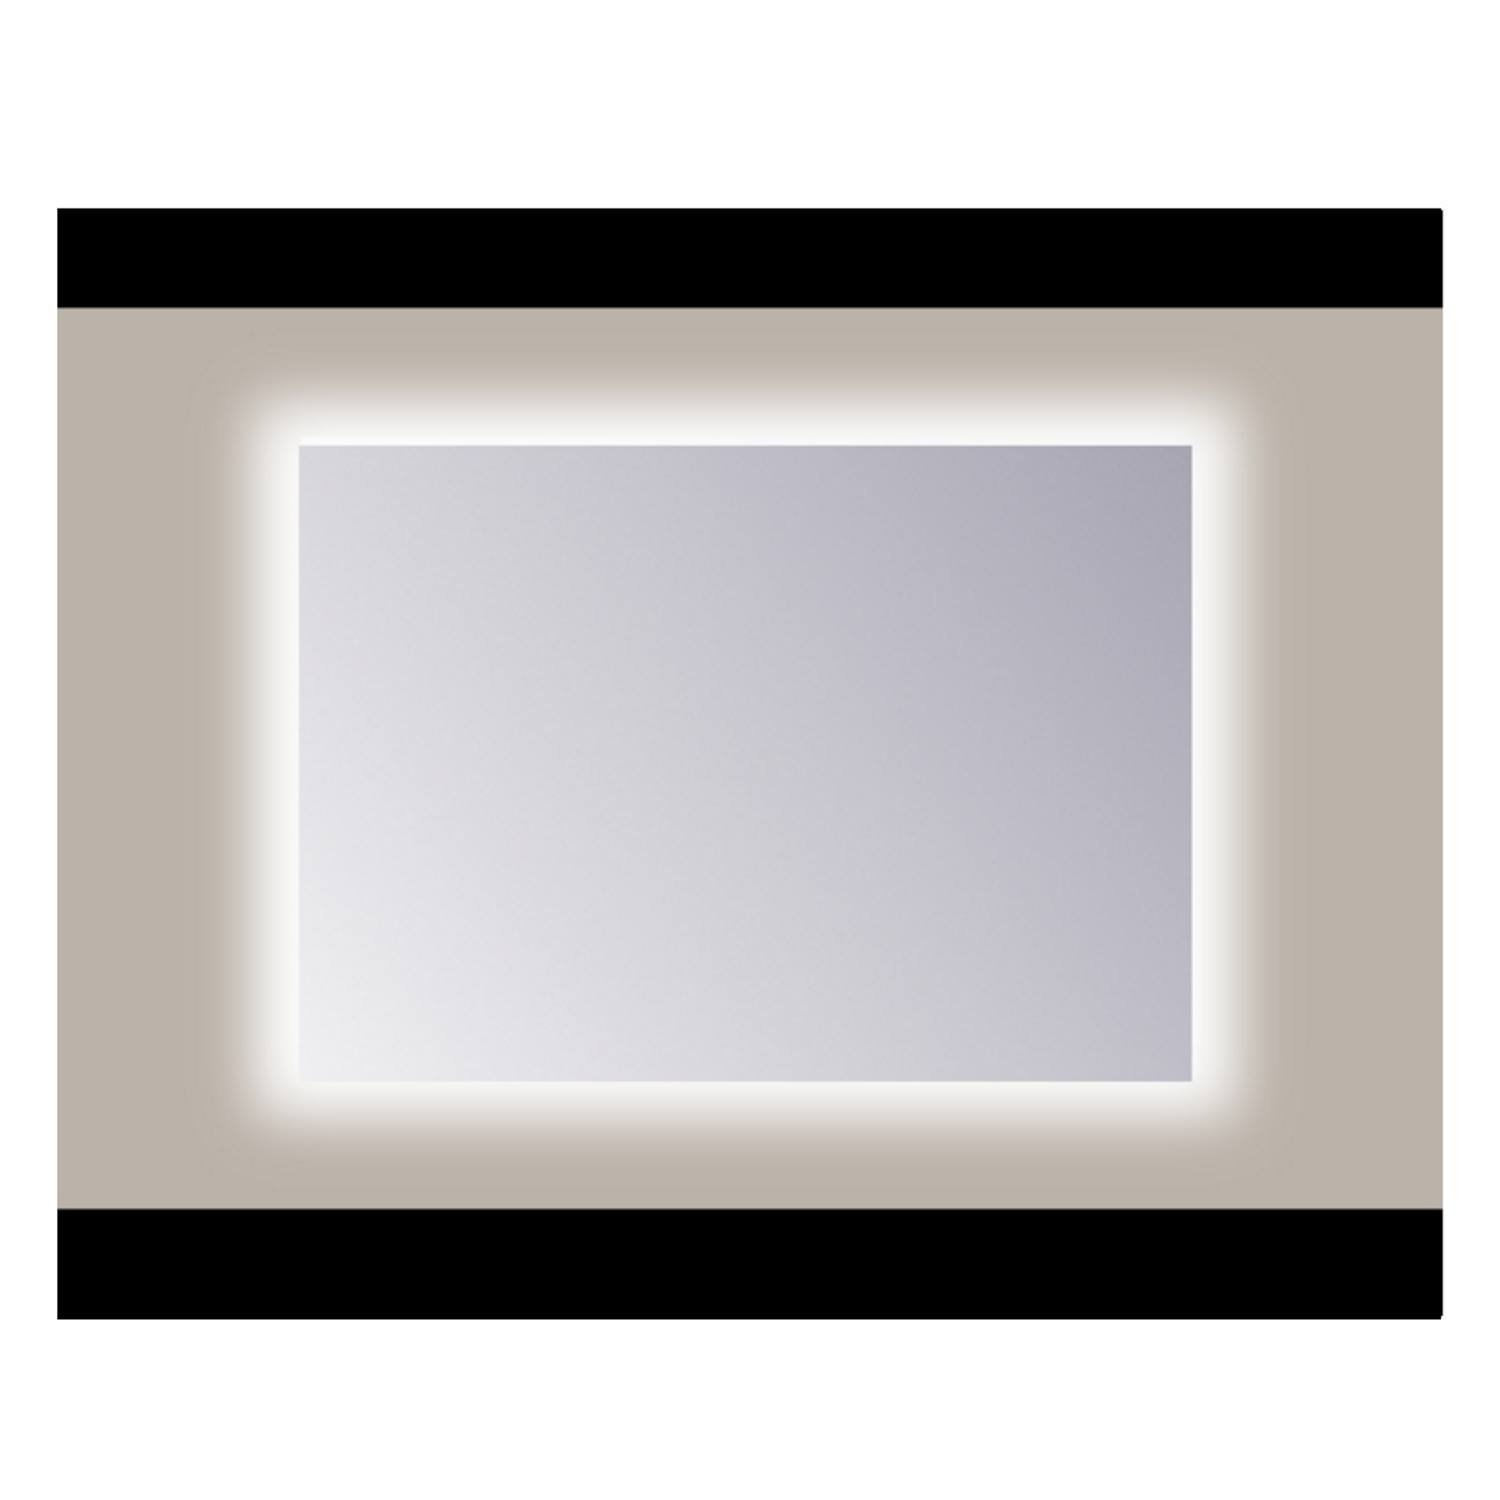 Spiegel Sanicare Q-mirrors Zonder Omlijsting 60 x 70 cm Rondom Cold White LED PP Geslepen